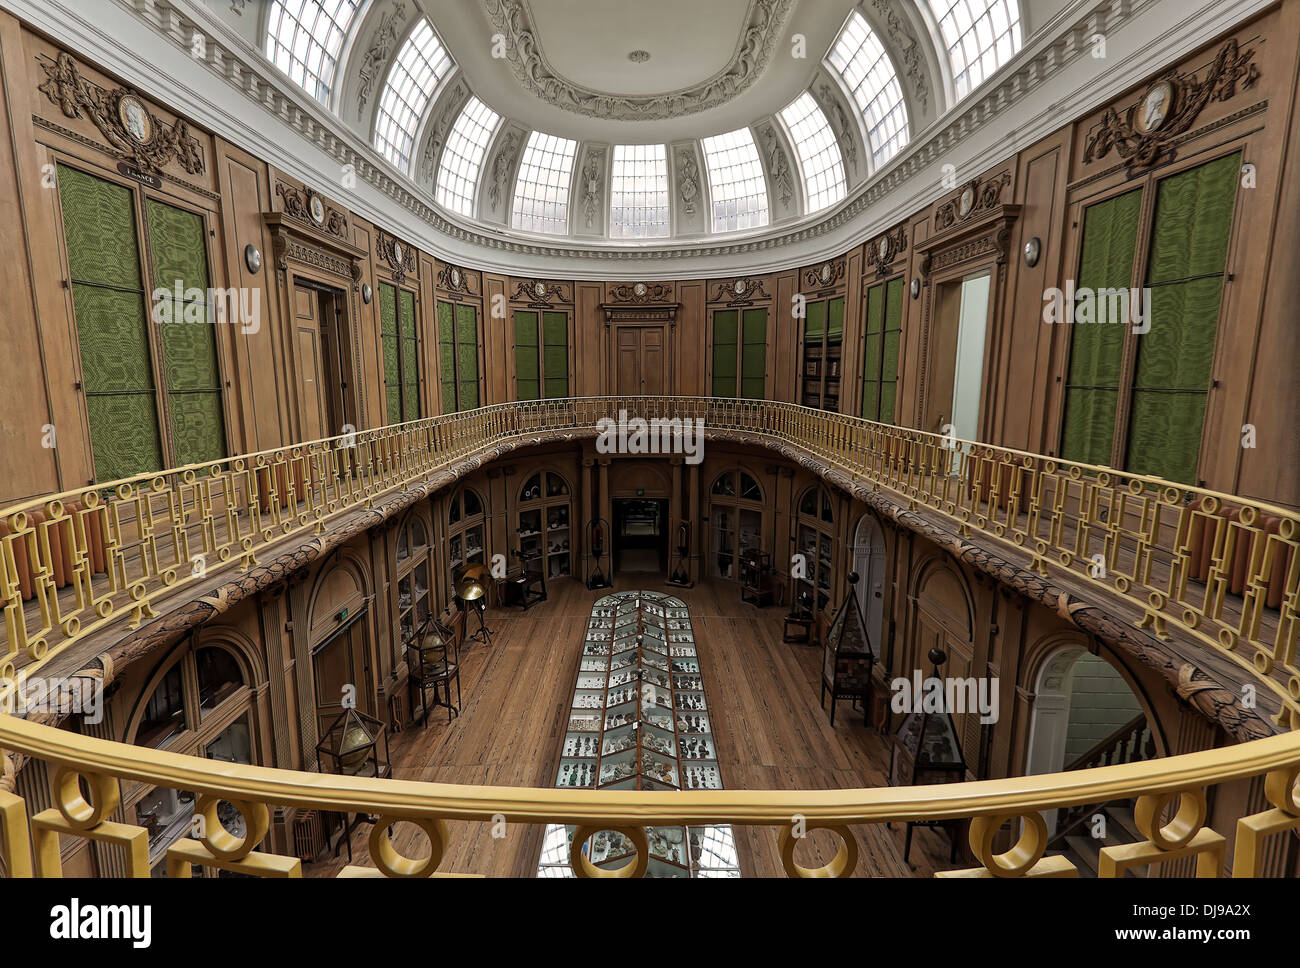 The Oval room at Teylers Museum, Haarlem, North Holland, The Netherlands. - Stock Image